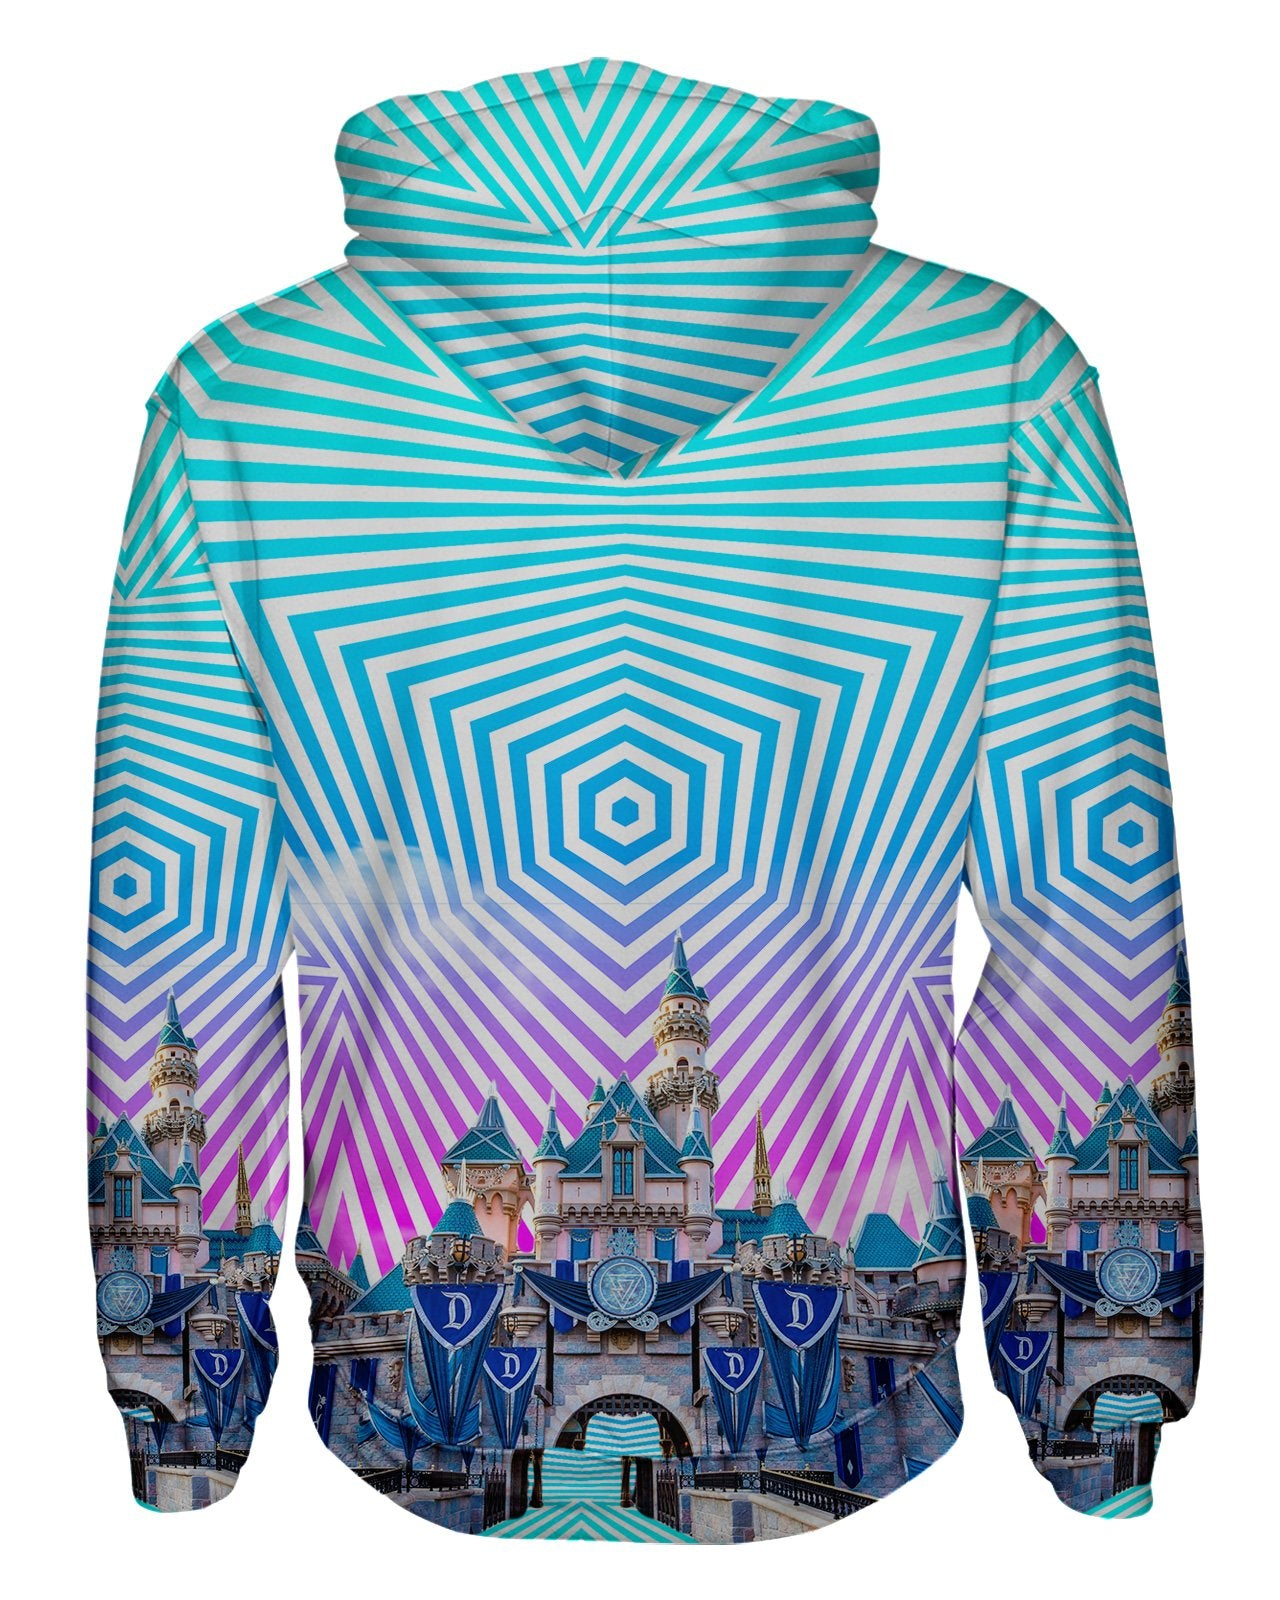 Sleeping Beauty Castle Zip Hoodie